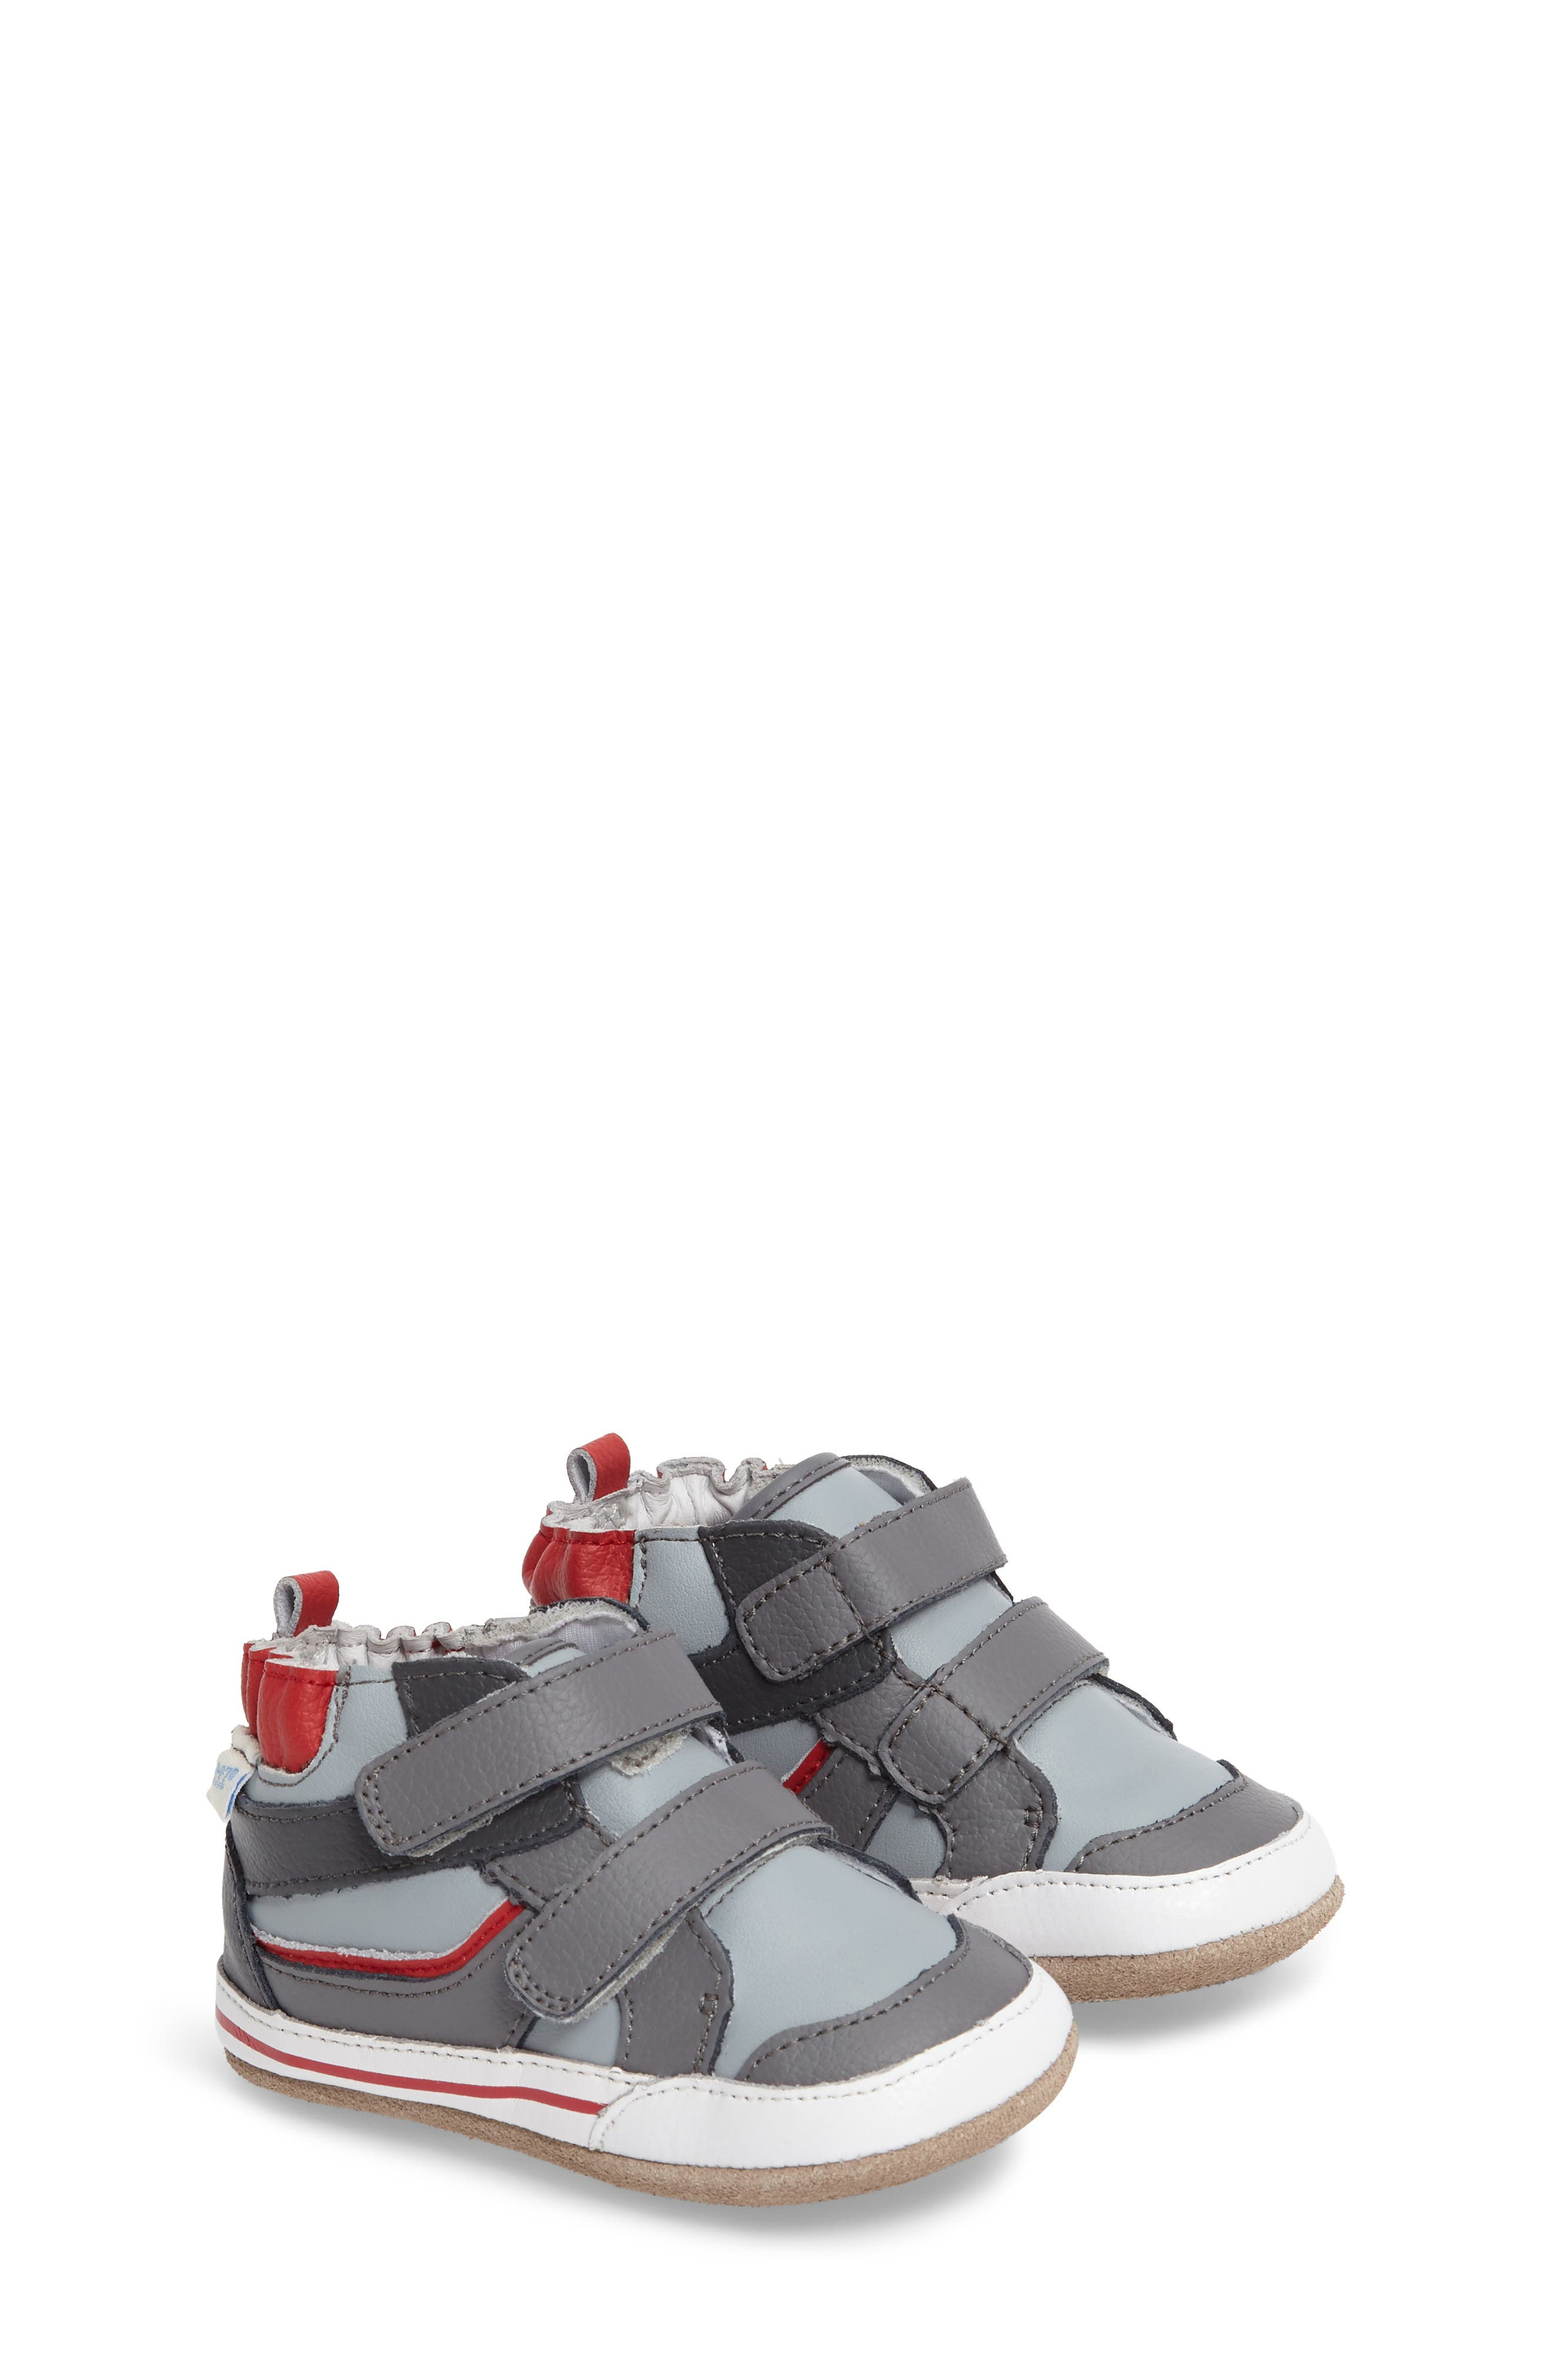 Greg Crib Shoe,                             Main thumbnail 1, color,                             Grey